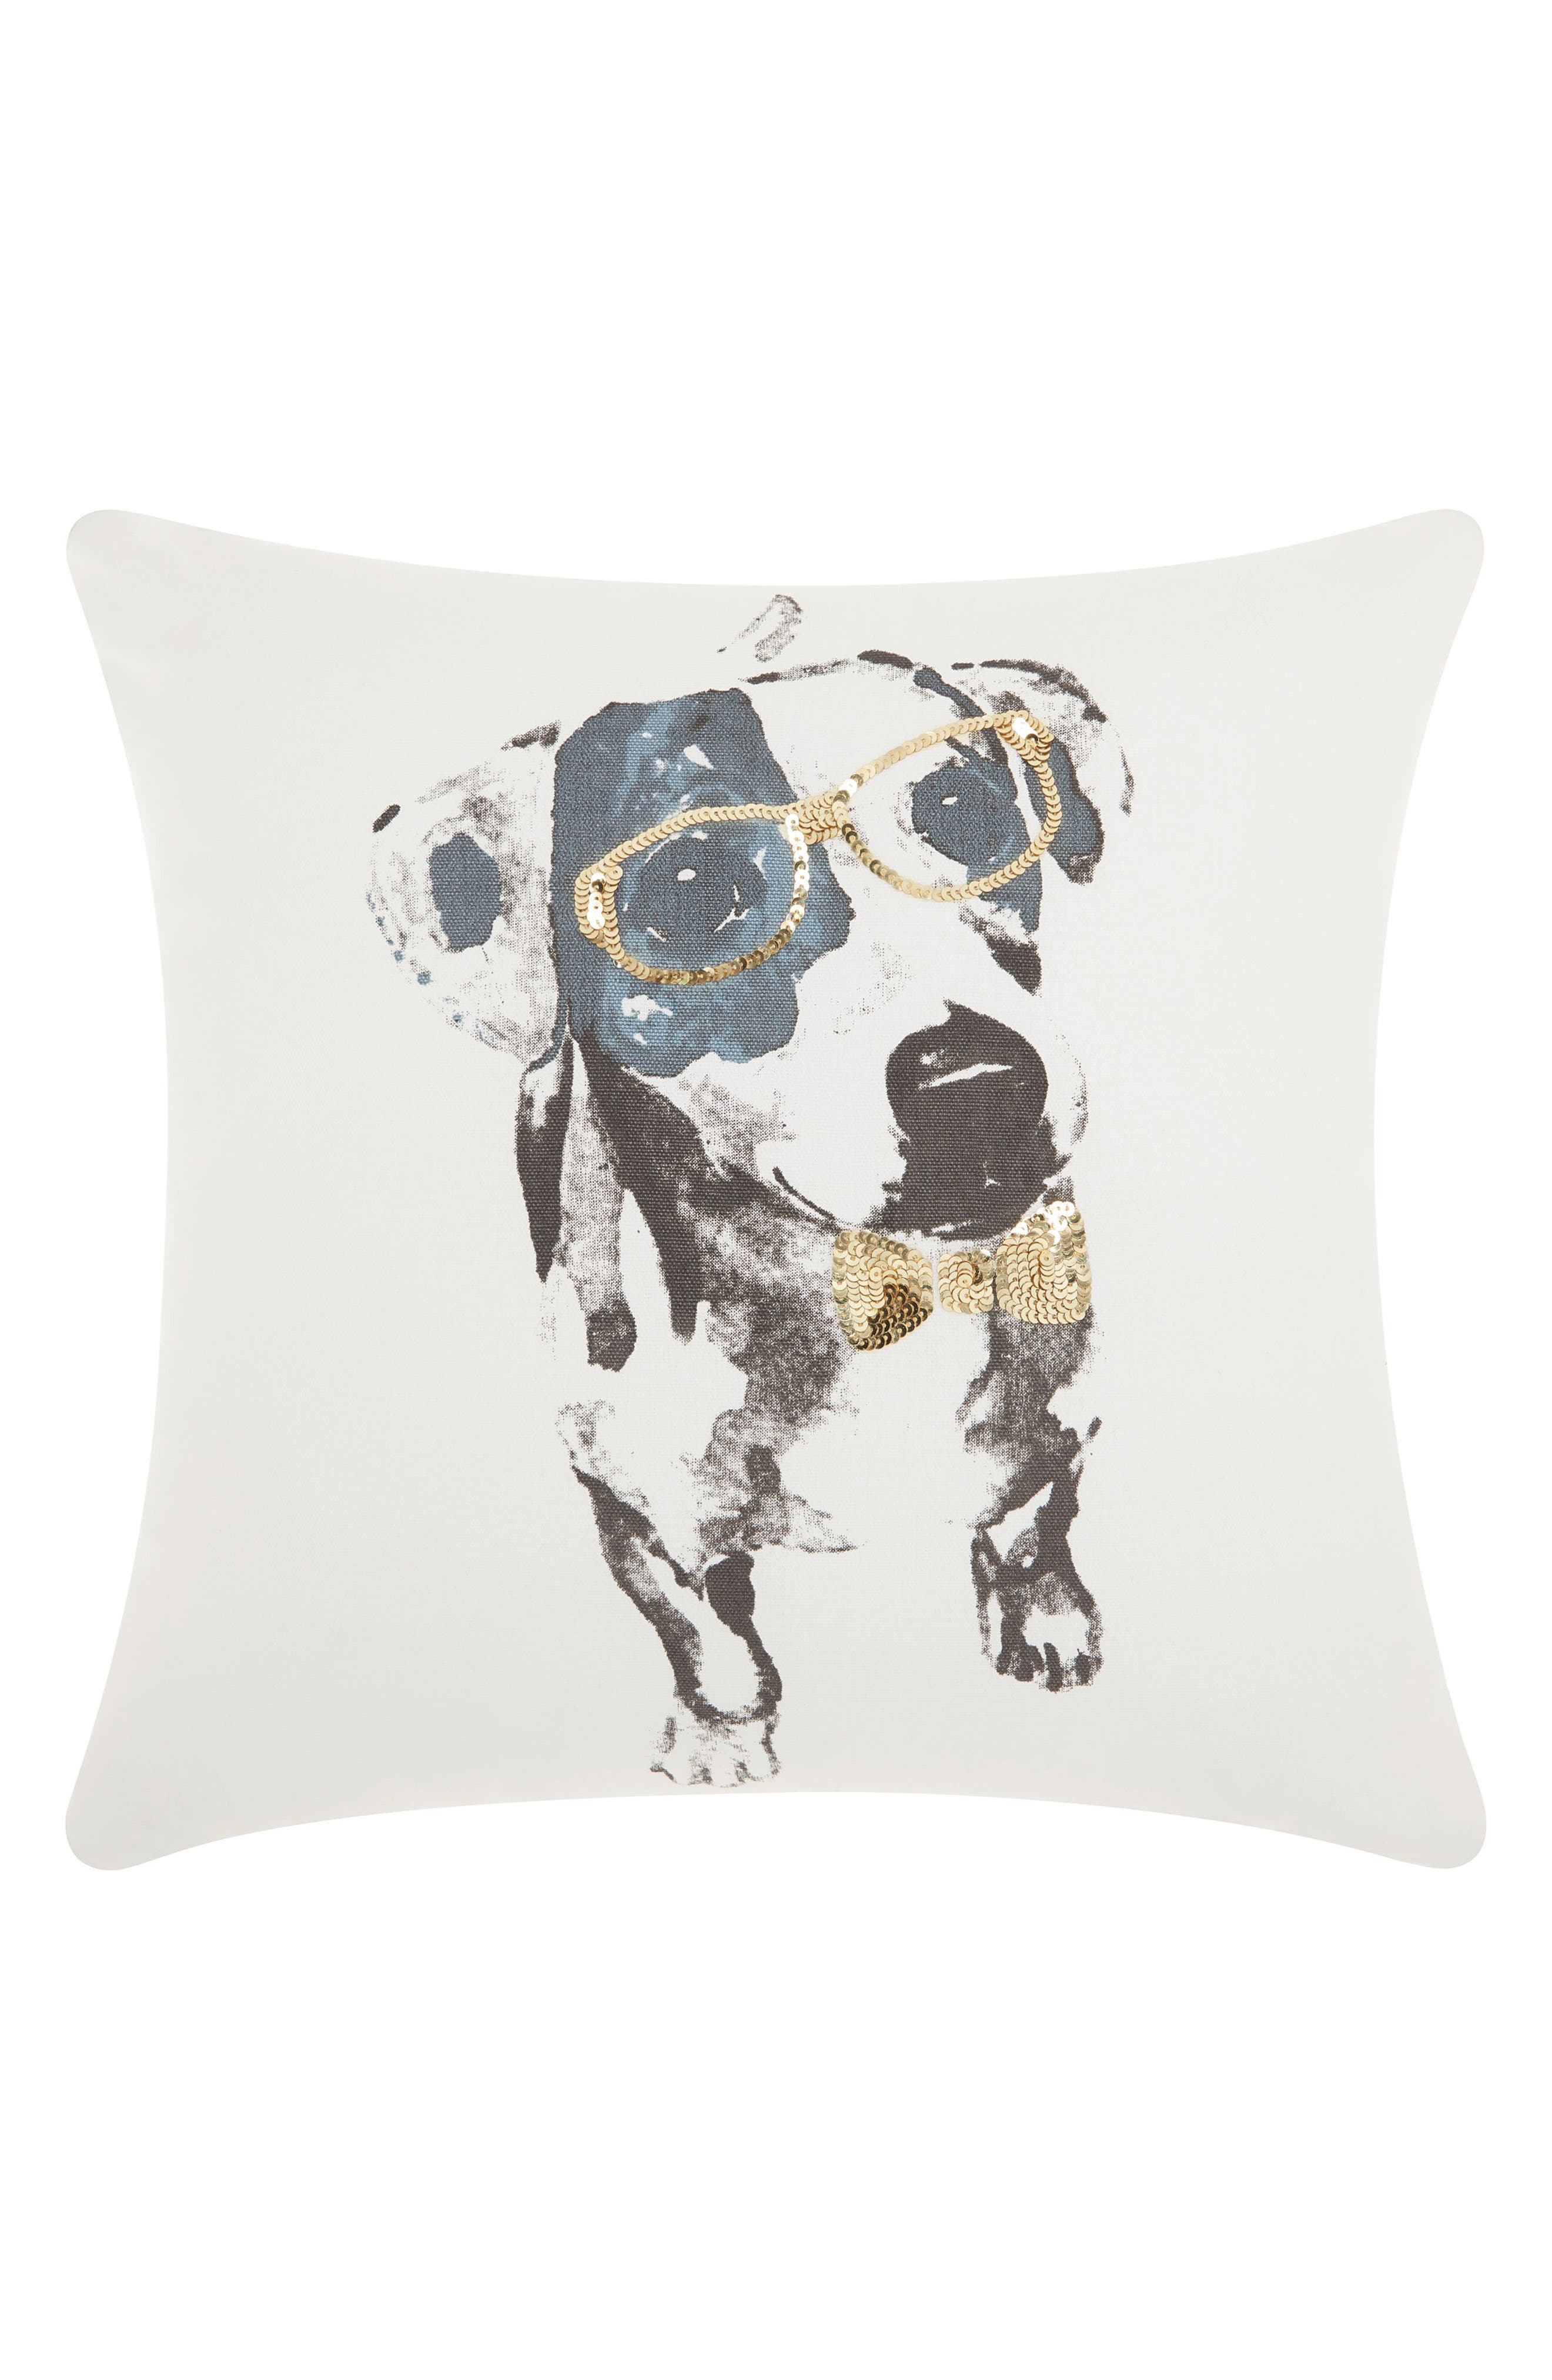 Sequin Dalmatian Accent Pillow,                             Main thumbnail 1, color,                             White